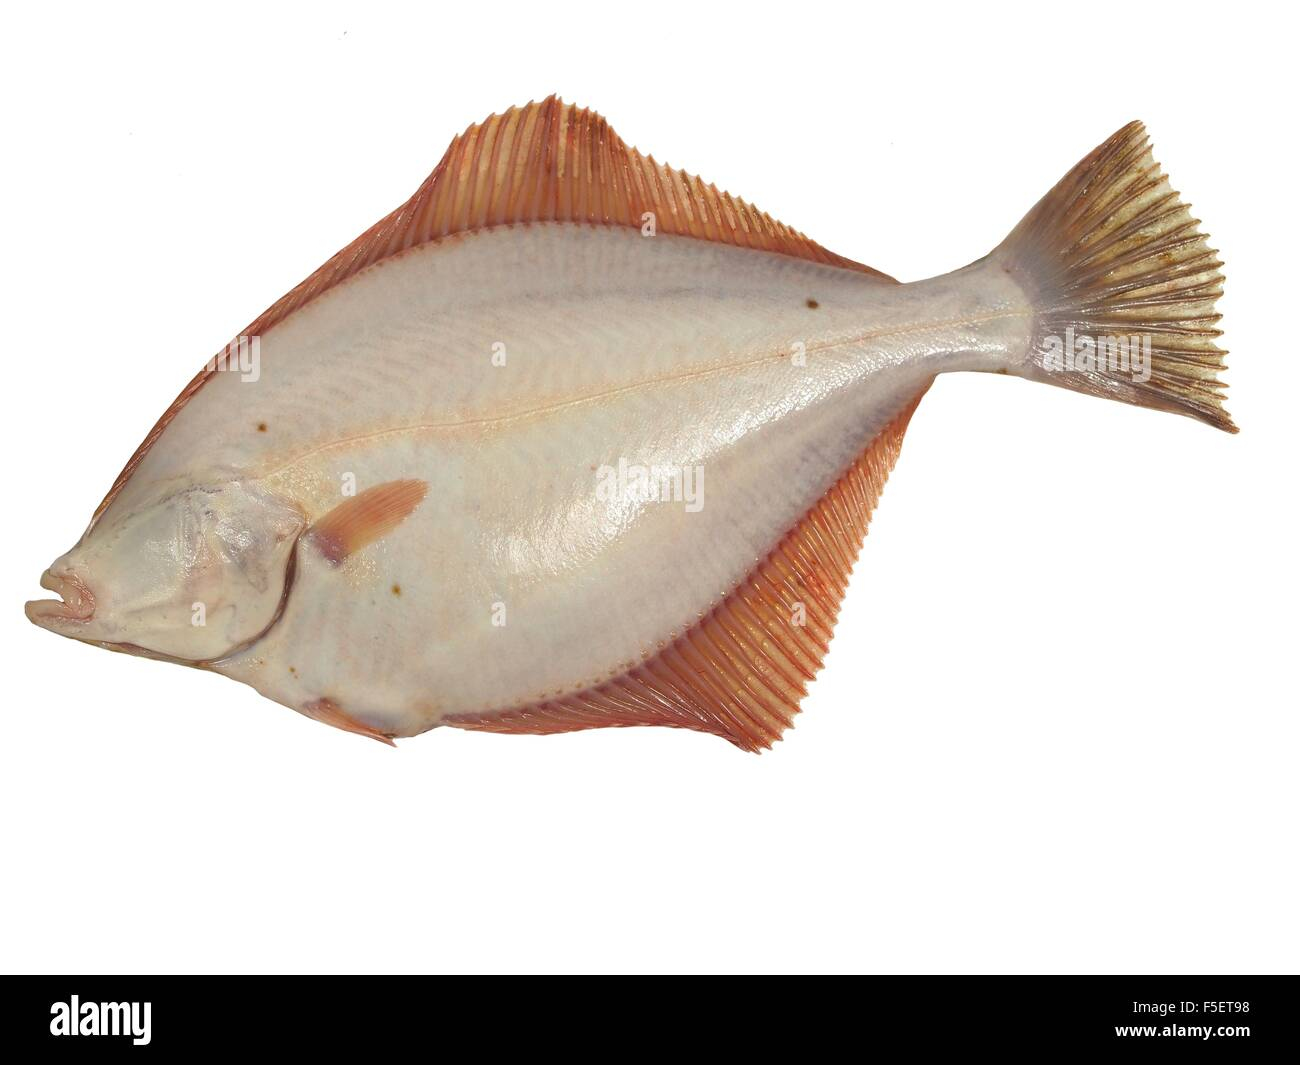 big fish flounder on white background - Stock Image